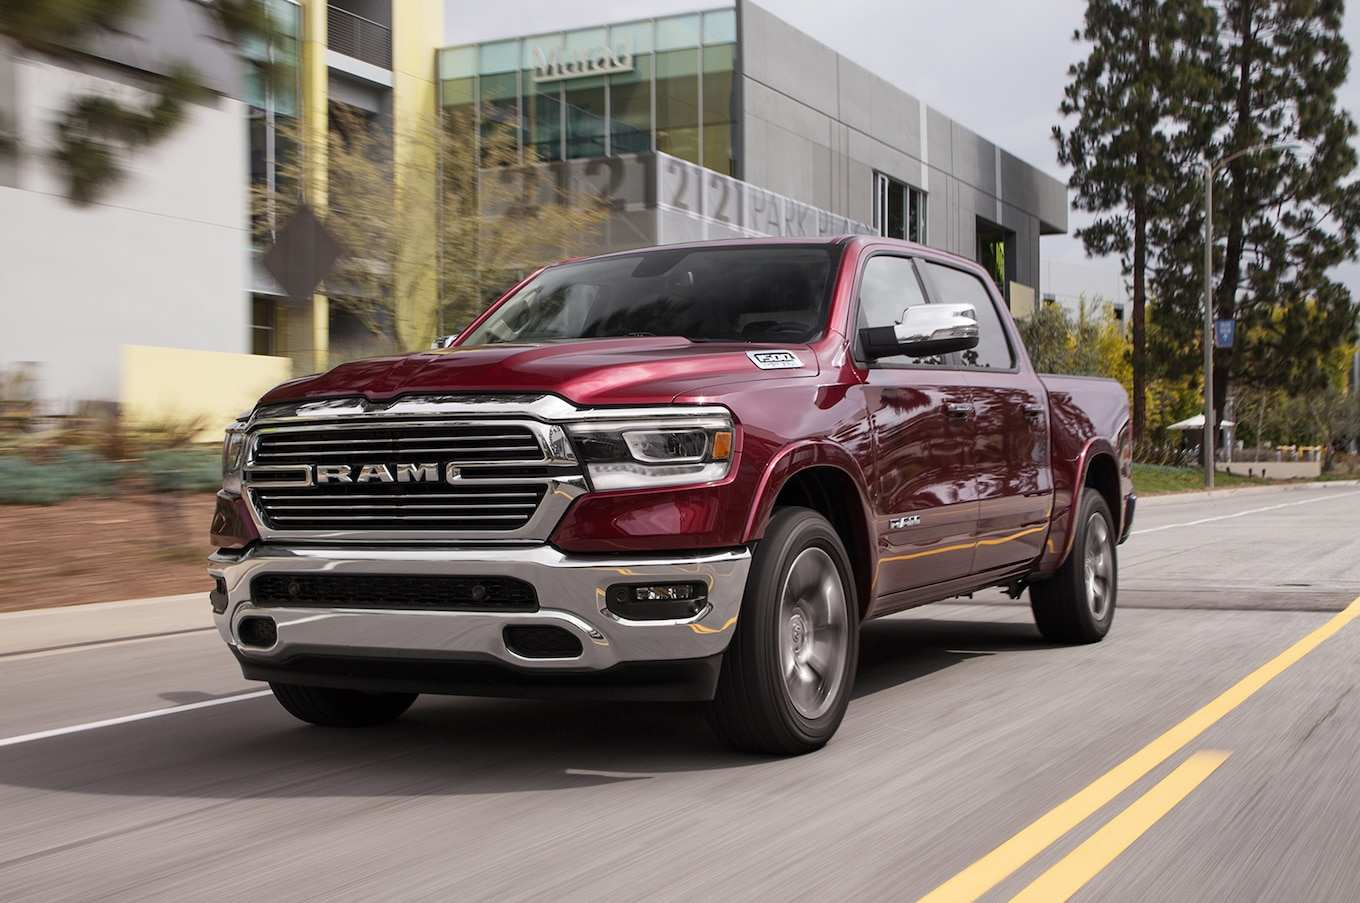 53 All New 2019 Dodge 2500 Specs Prices